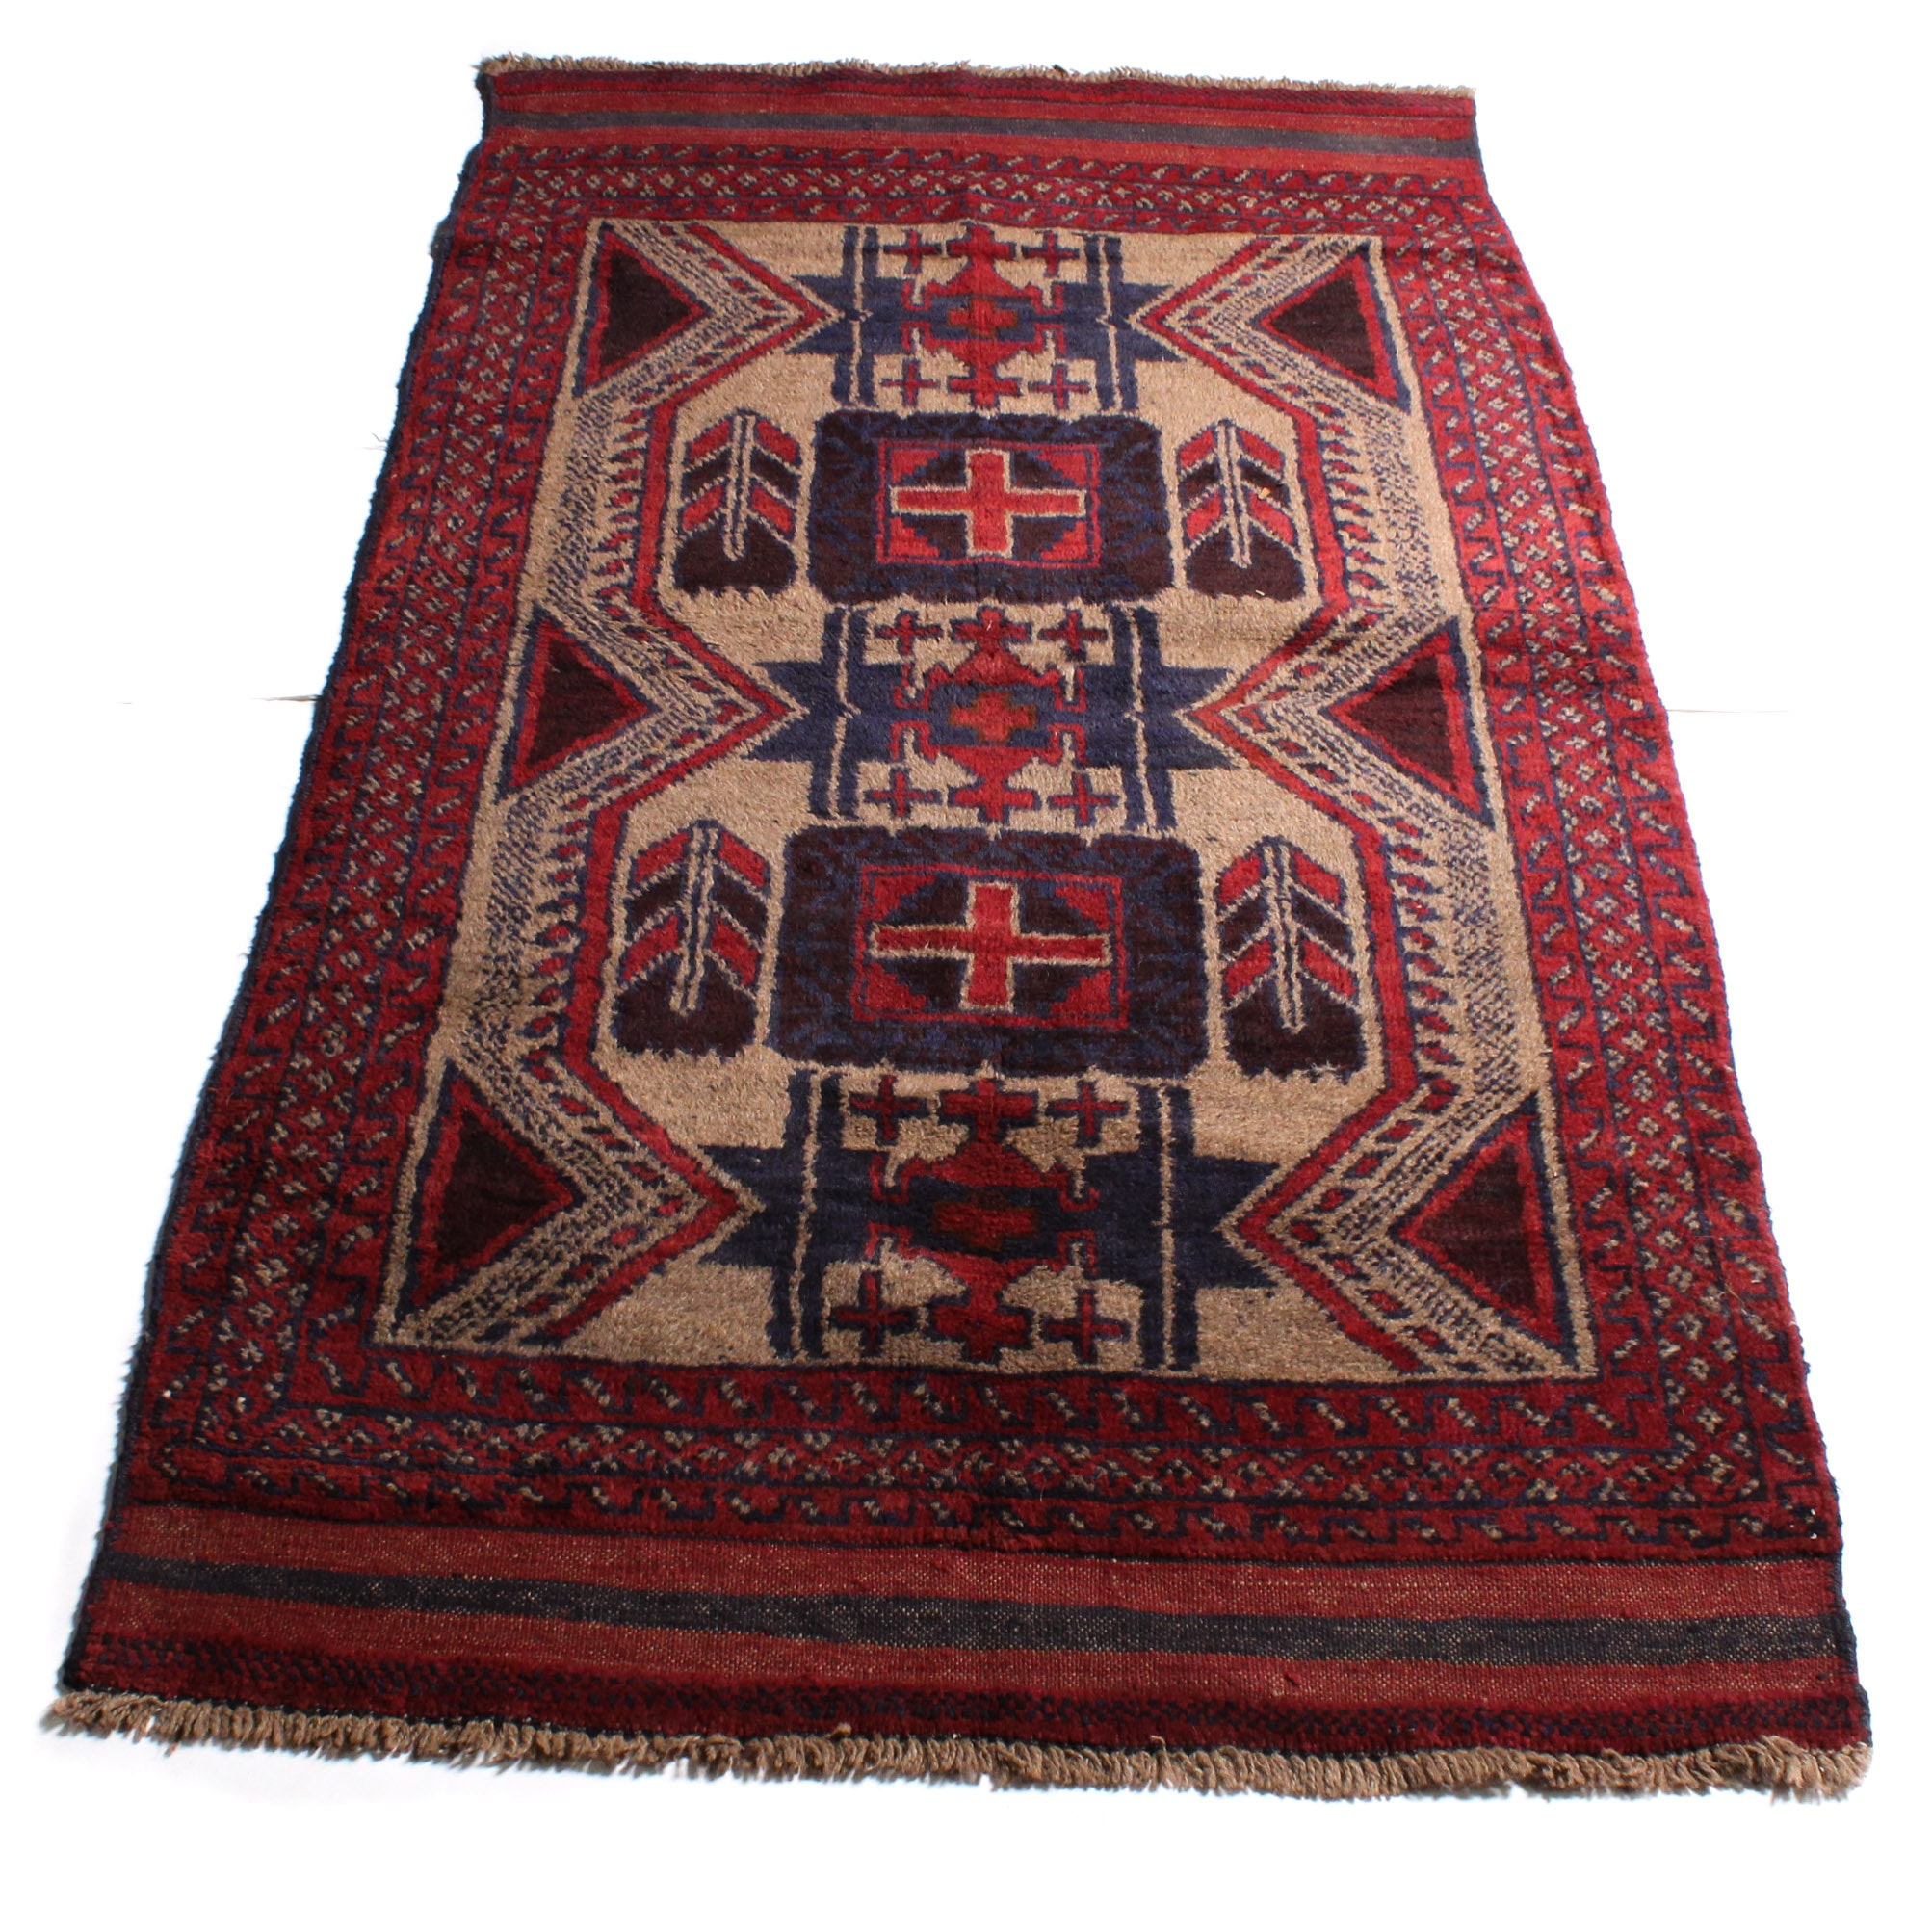 3'6 x 6'4 Hand-Knotted Afghan Baluch Rug